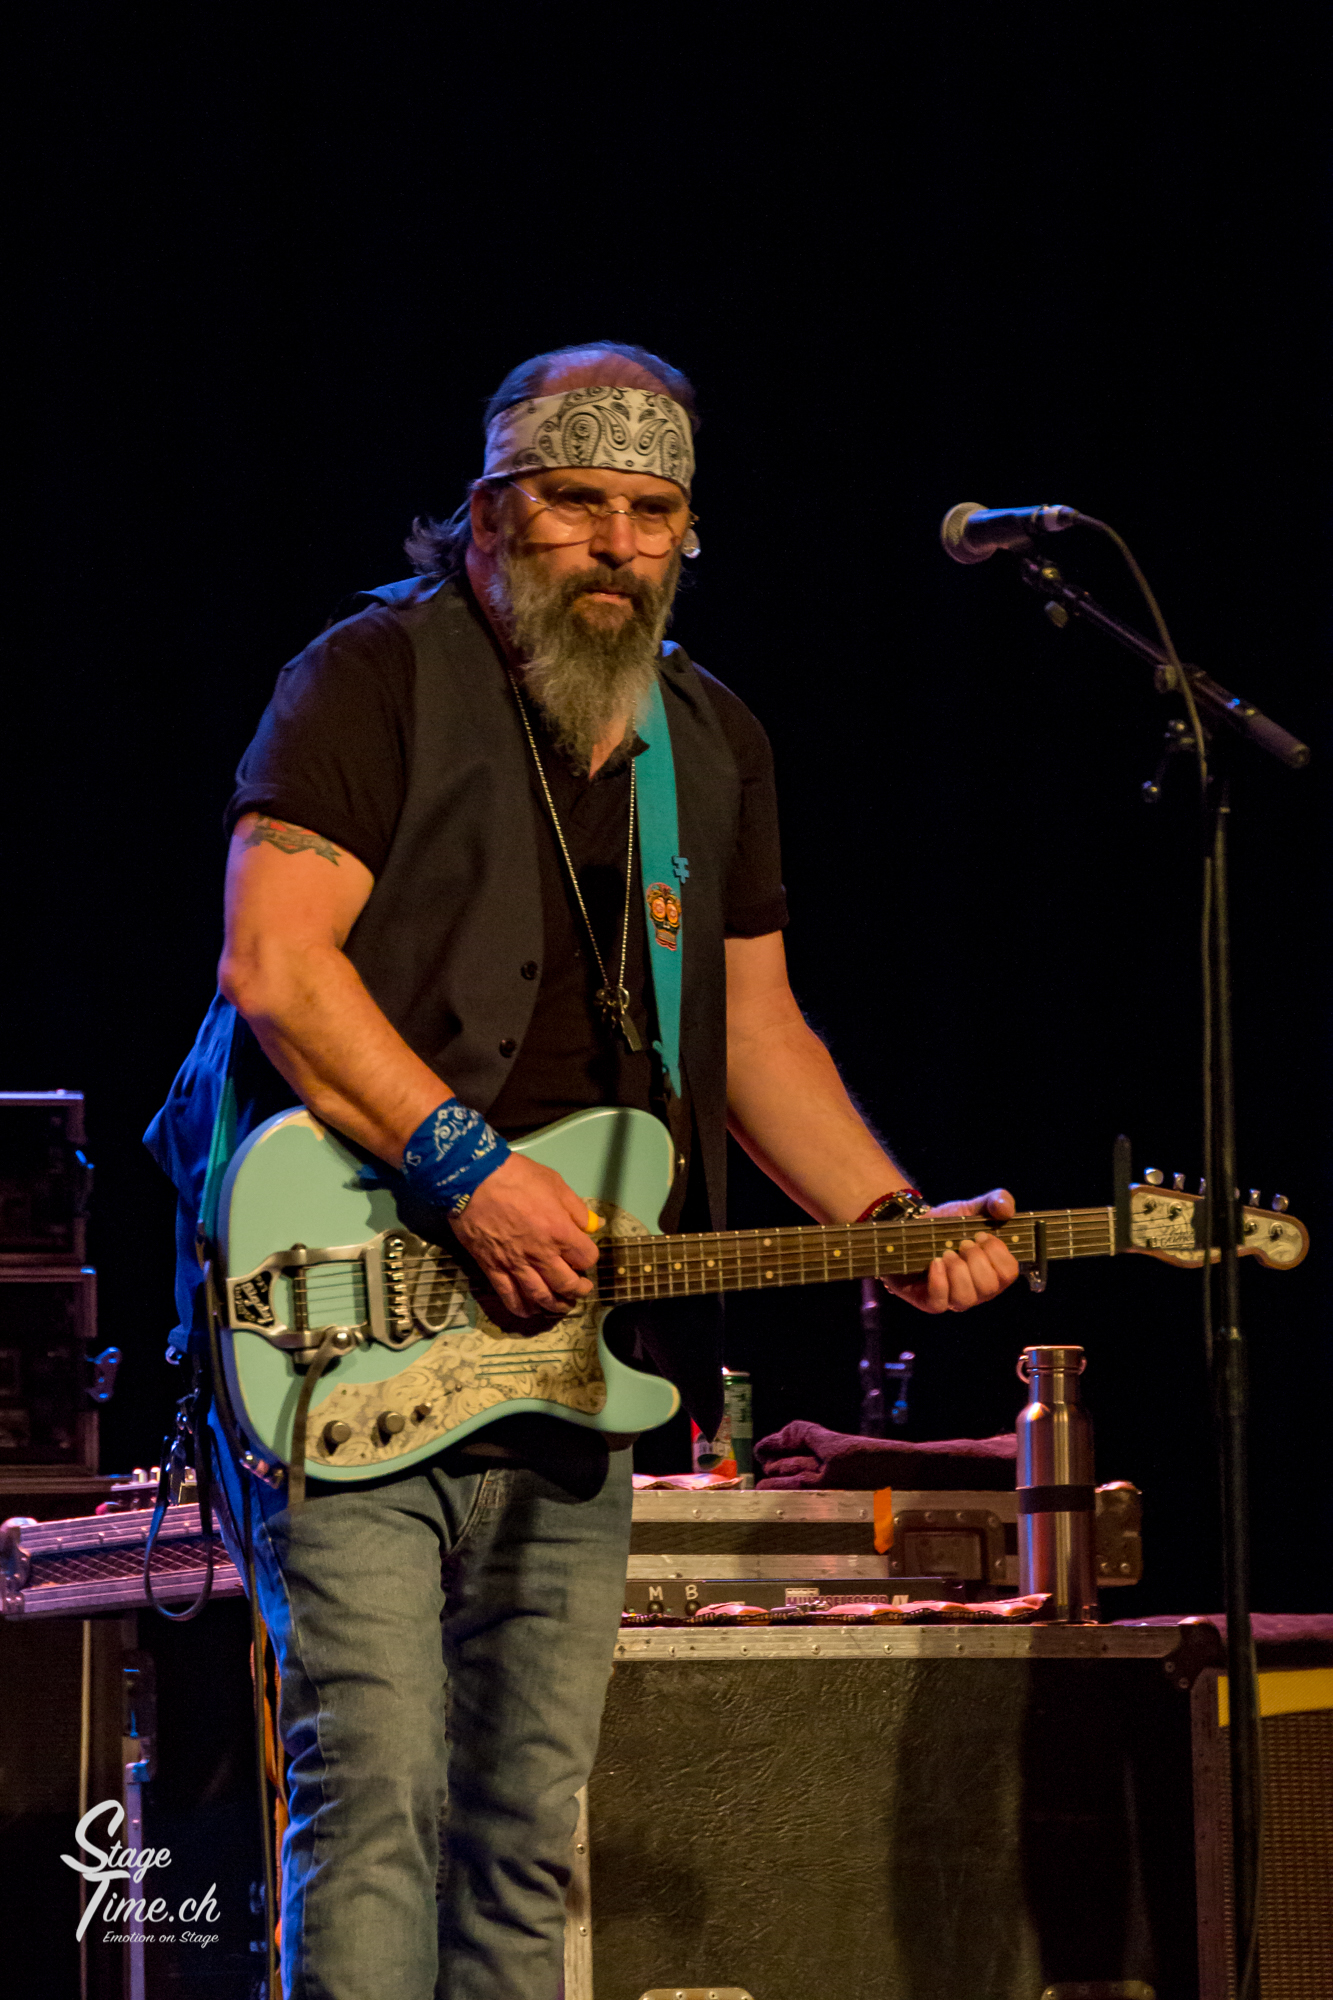 Steve_Earle_&_the_Dukes-12